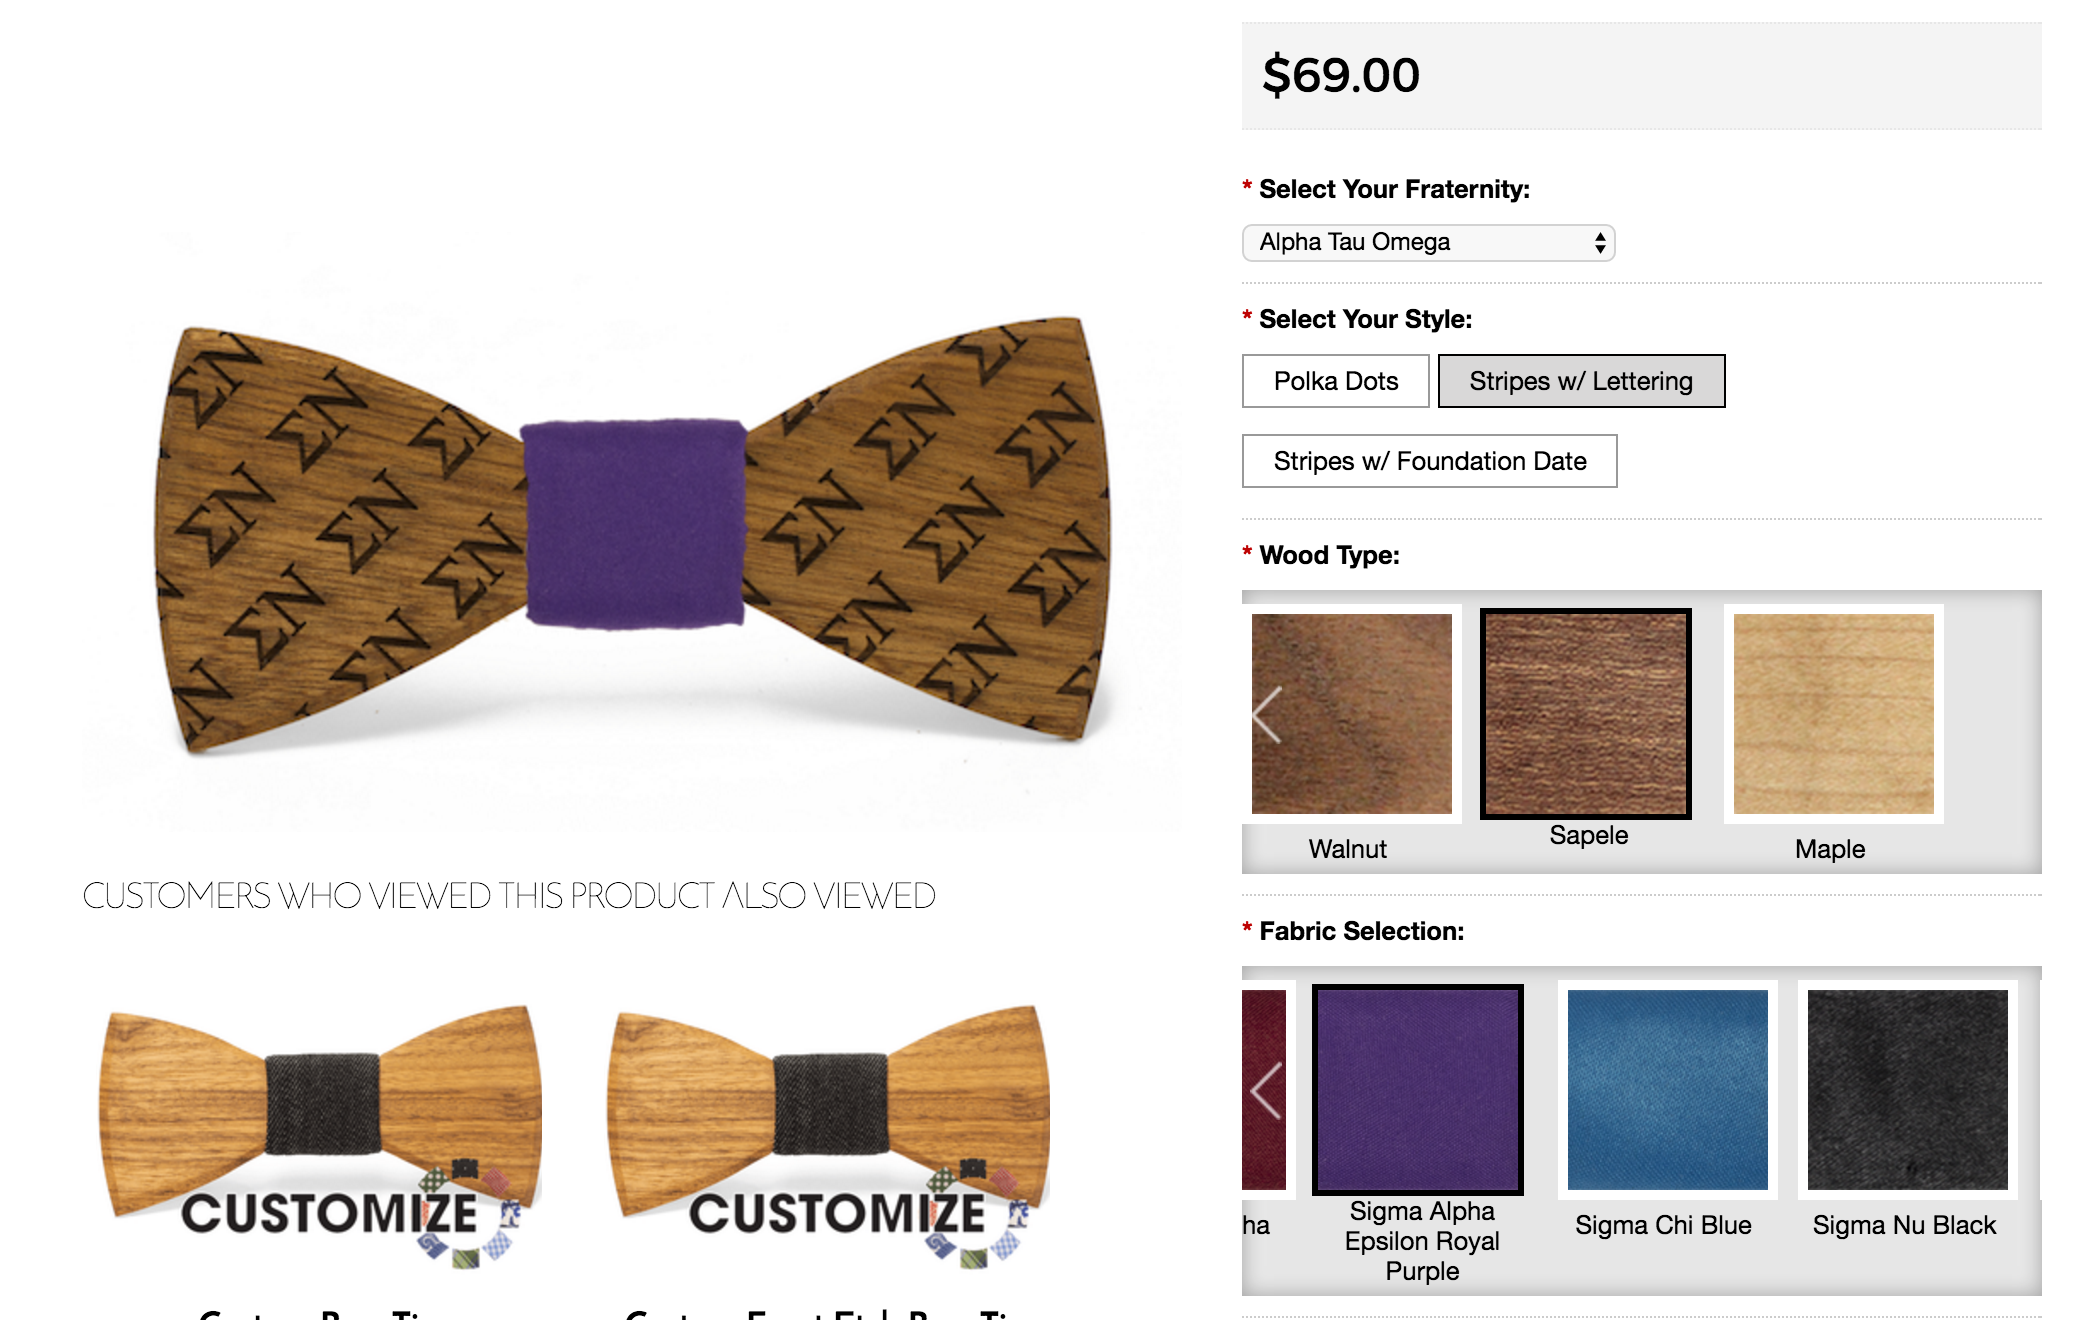 e460008b62b5 Simply visit our Custom Fraternity Bow Tie Builder by clicking here and  we'll interactively show you exactly what your bow tie will look like.